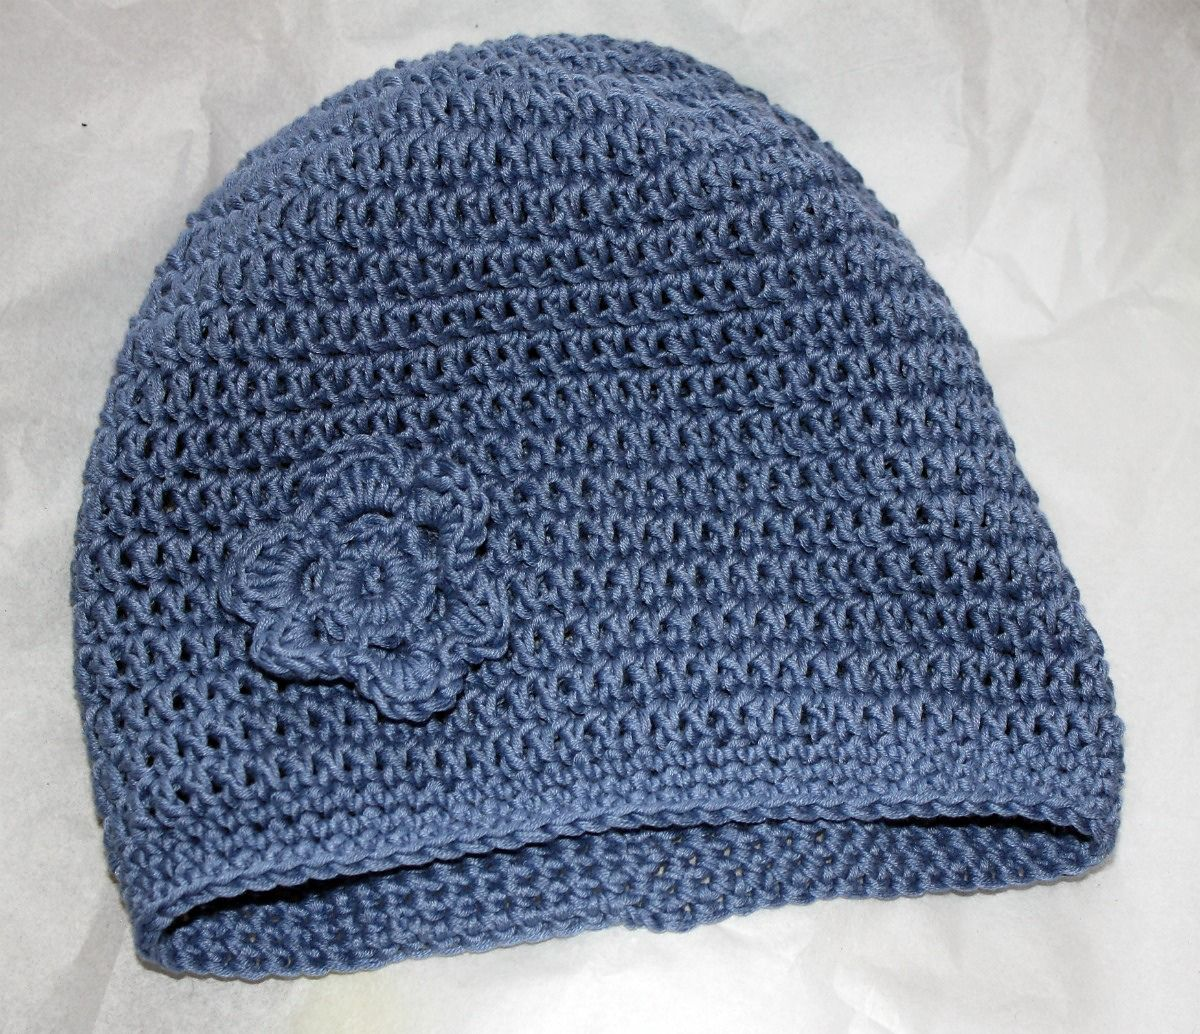 Chemo Hat Pattern | Chemo hats | Pinterest | Patterns, Crochet and Cap